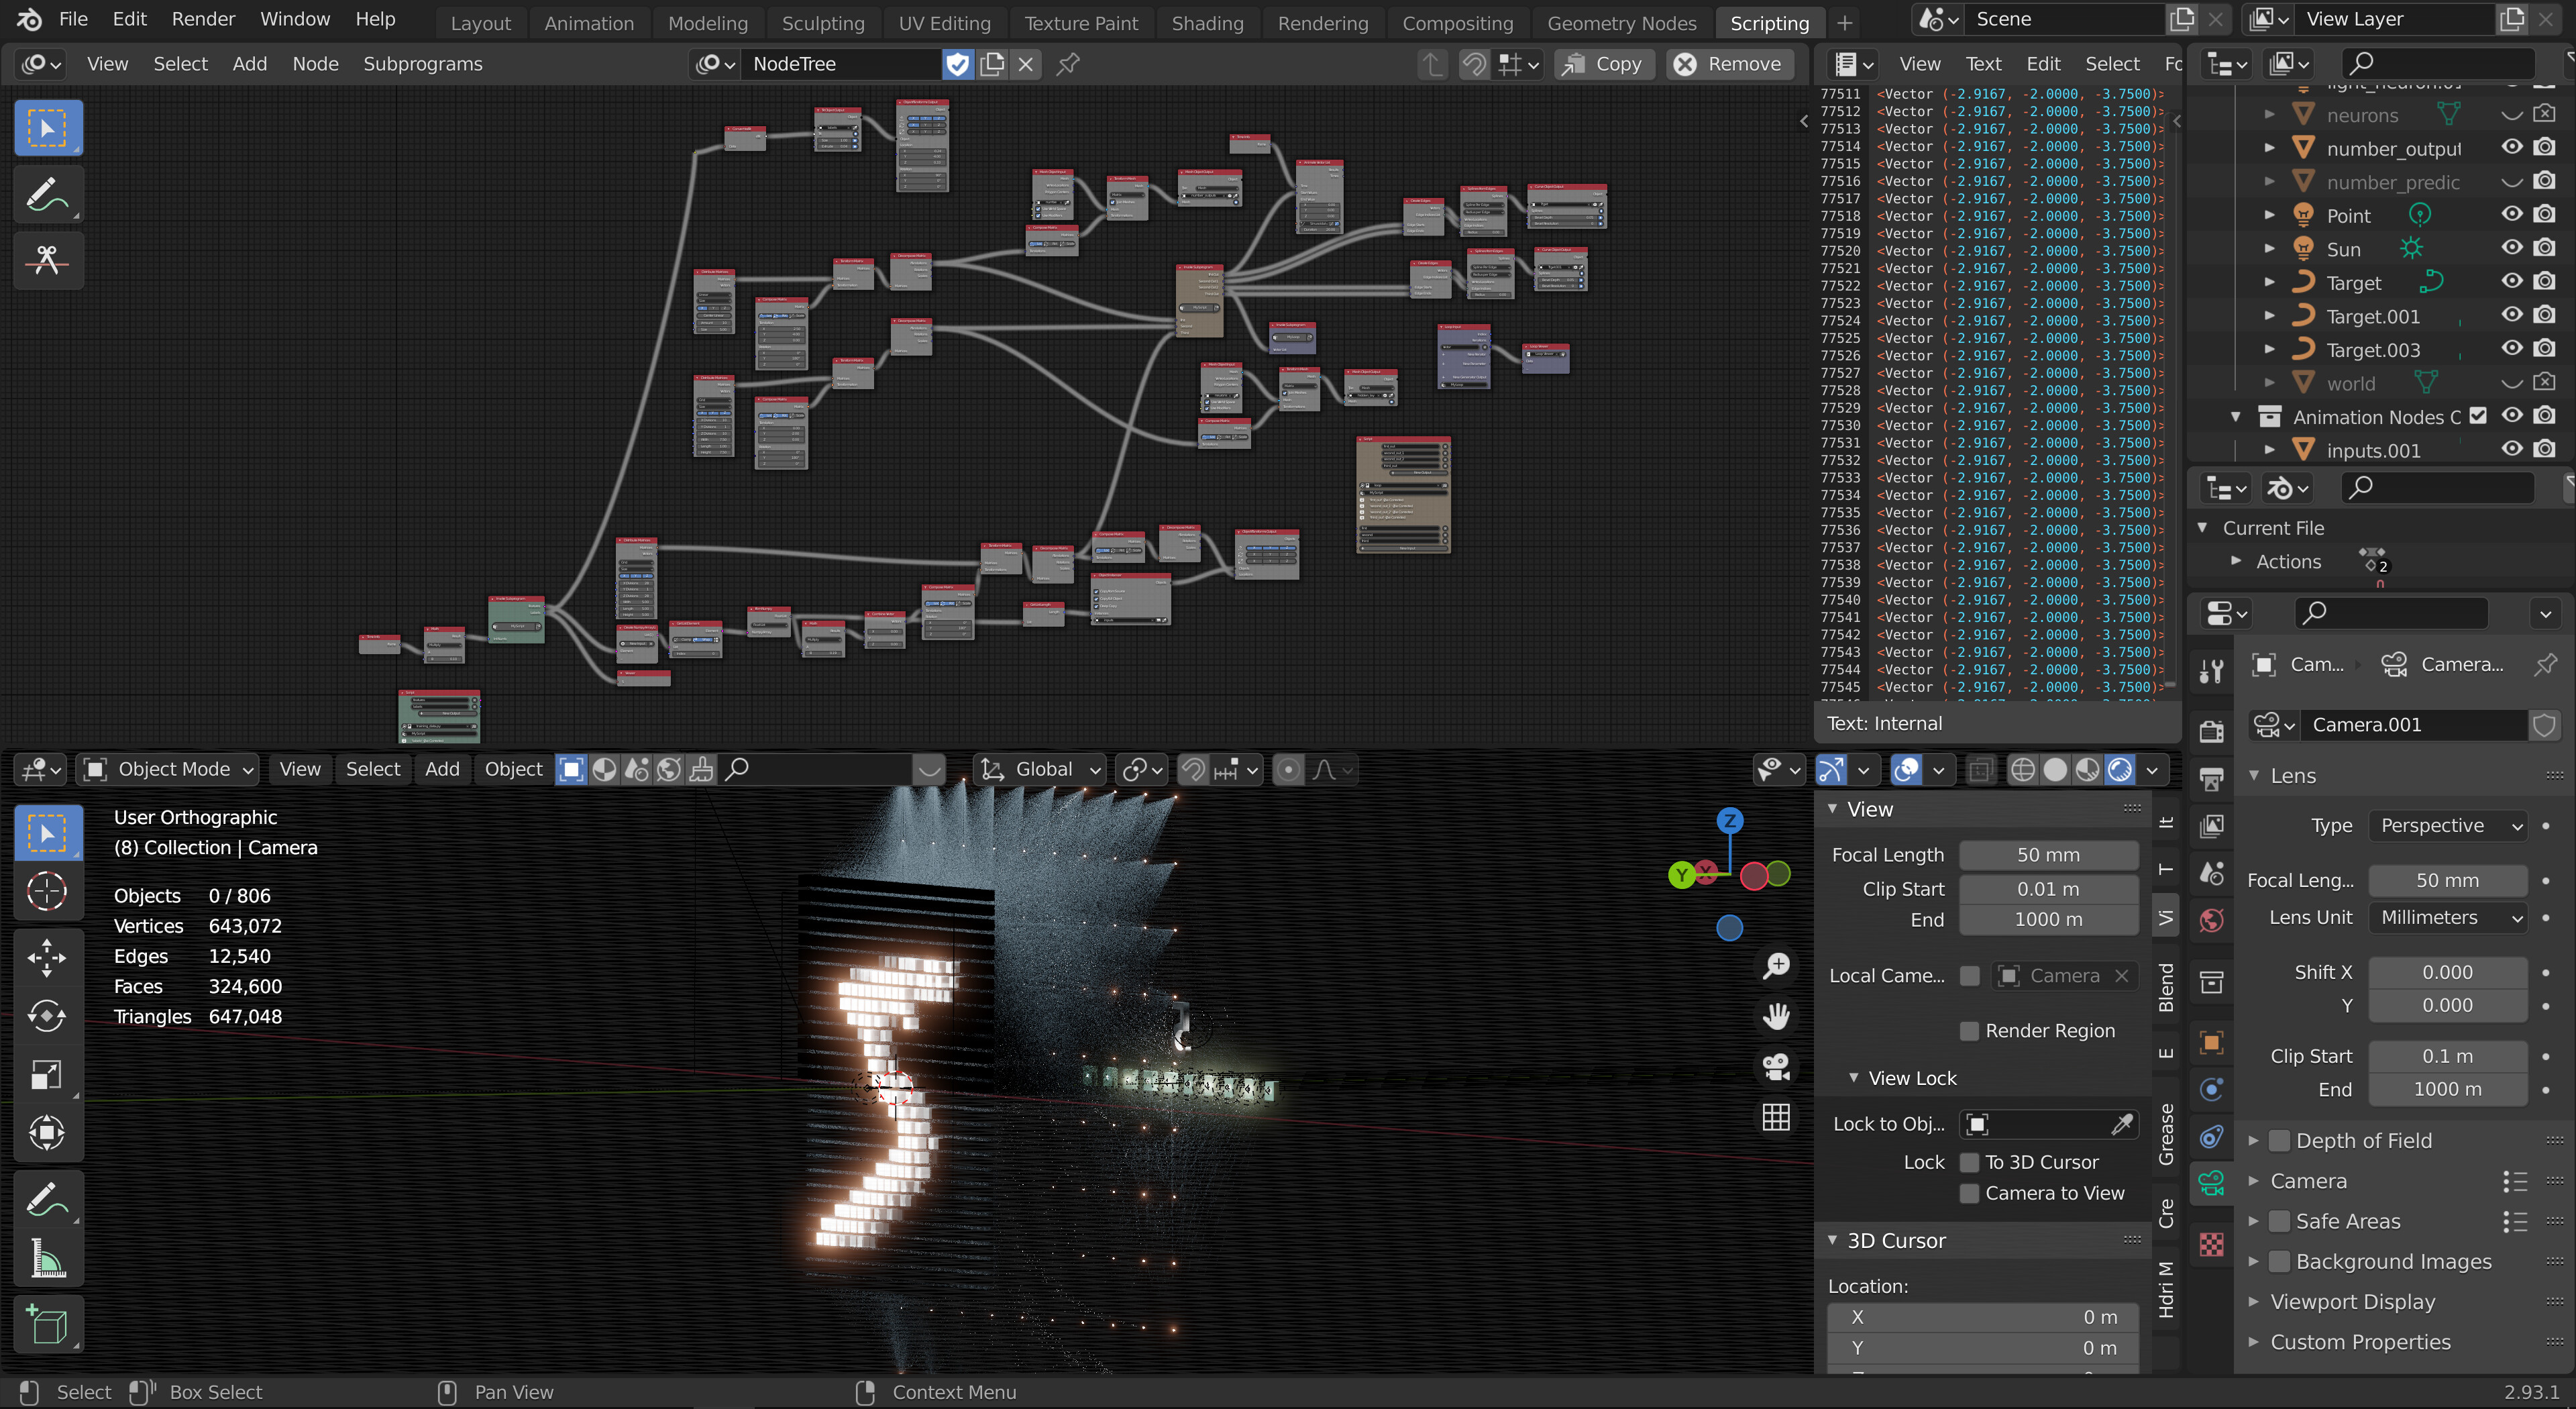 AI Neural Network Implemented In Blender - Finished Projects - Blender  Artists Community